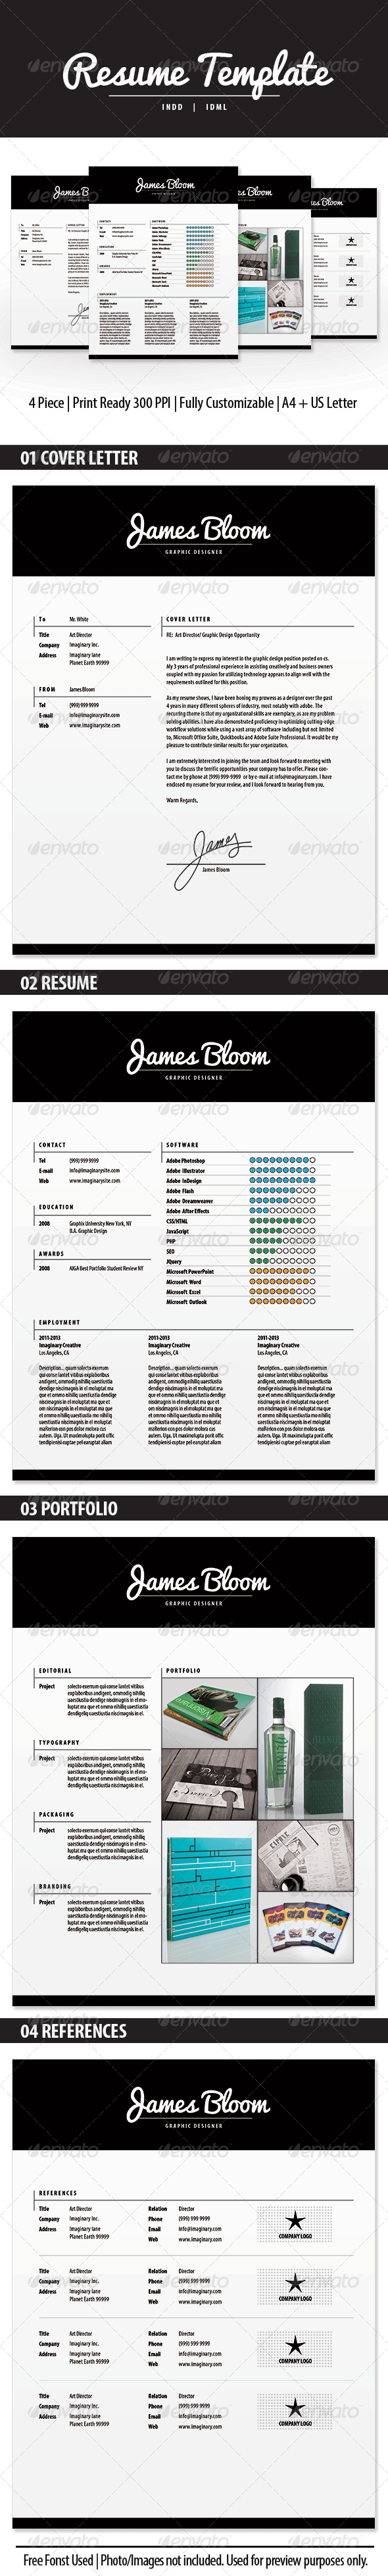 GraphicRiver Resume Template INDD 5723317